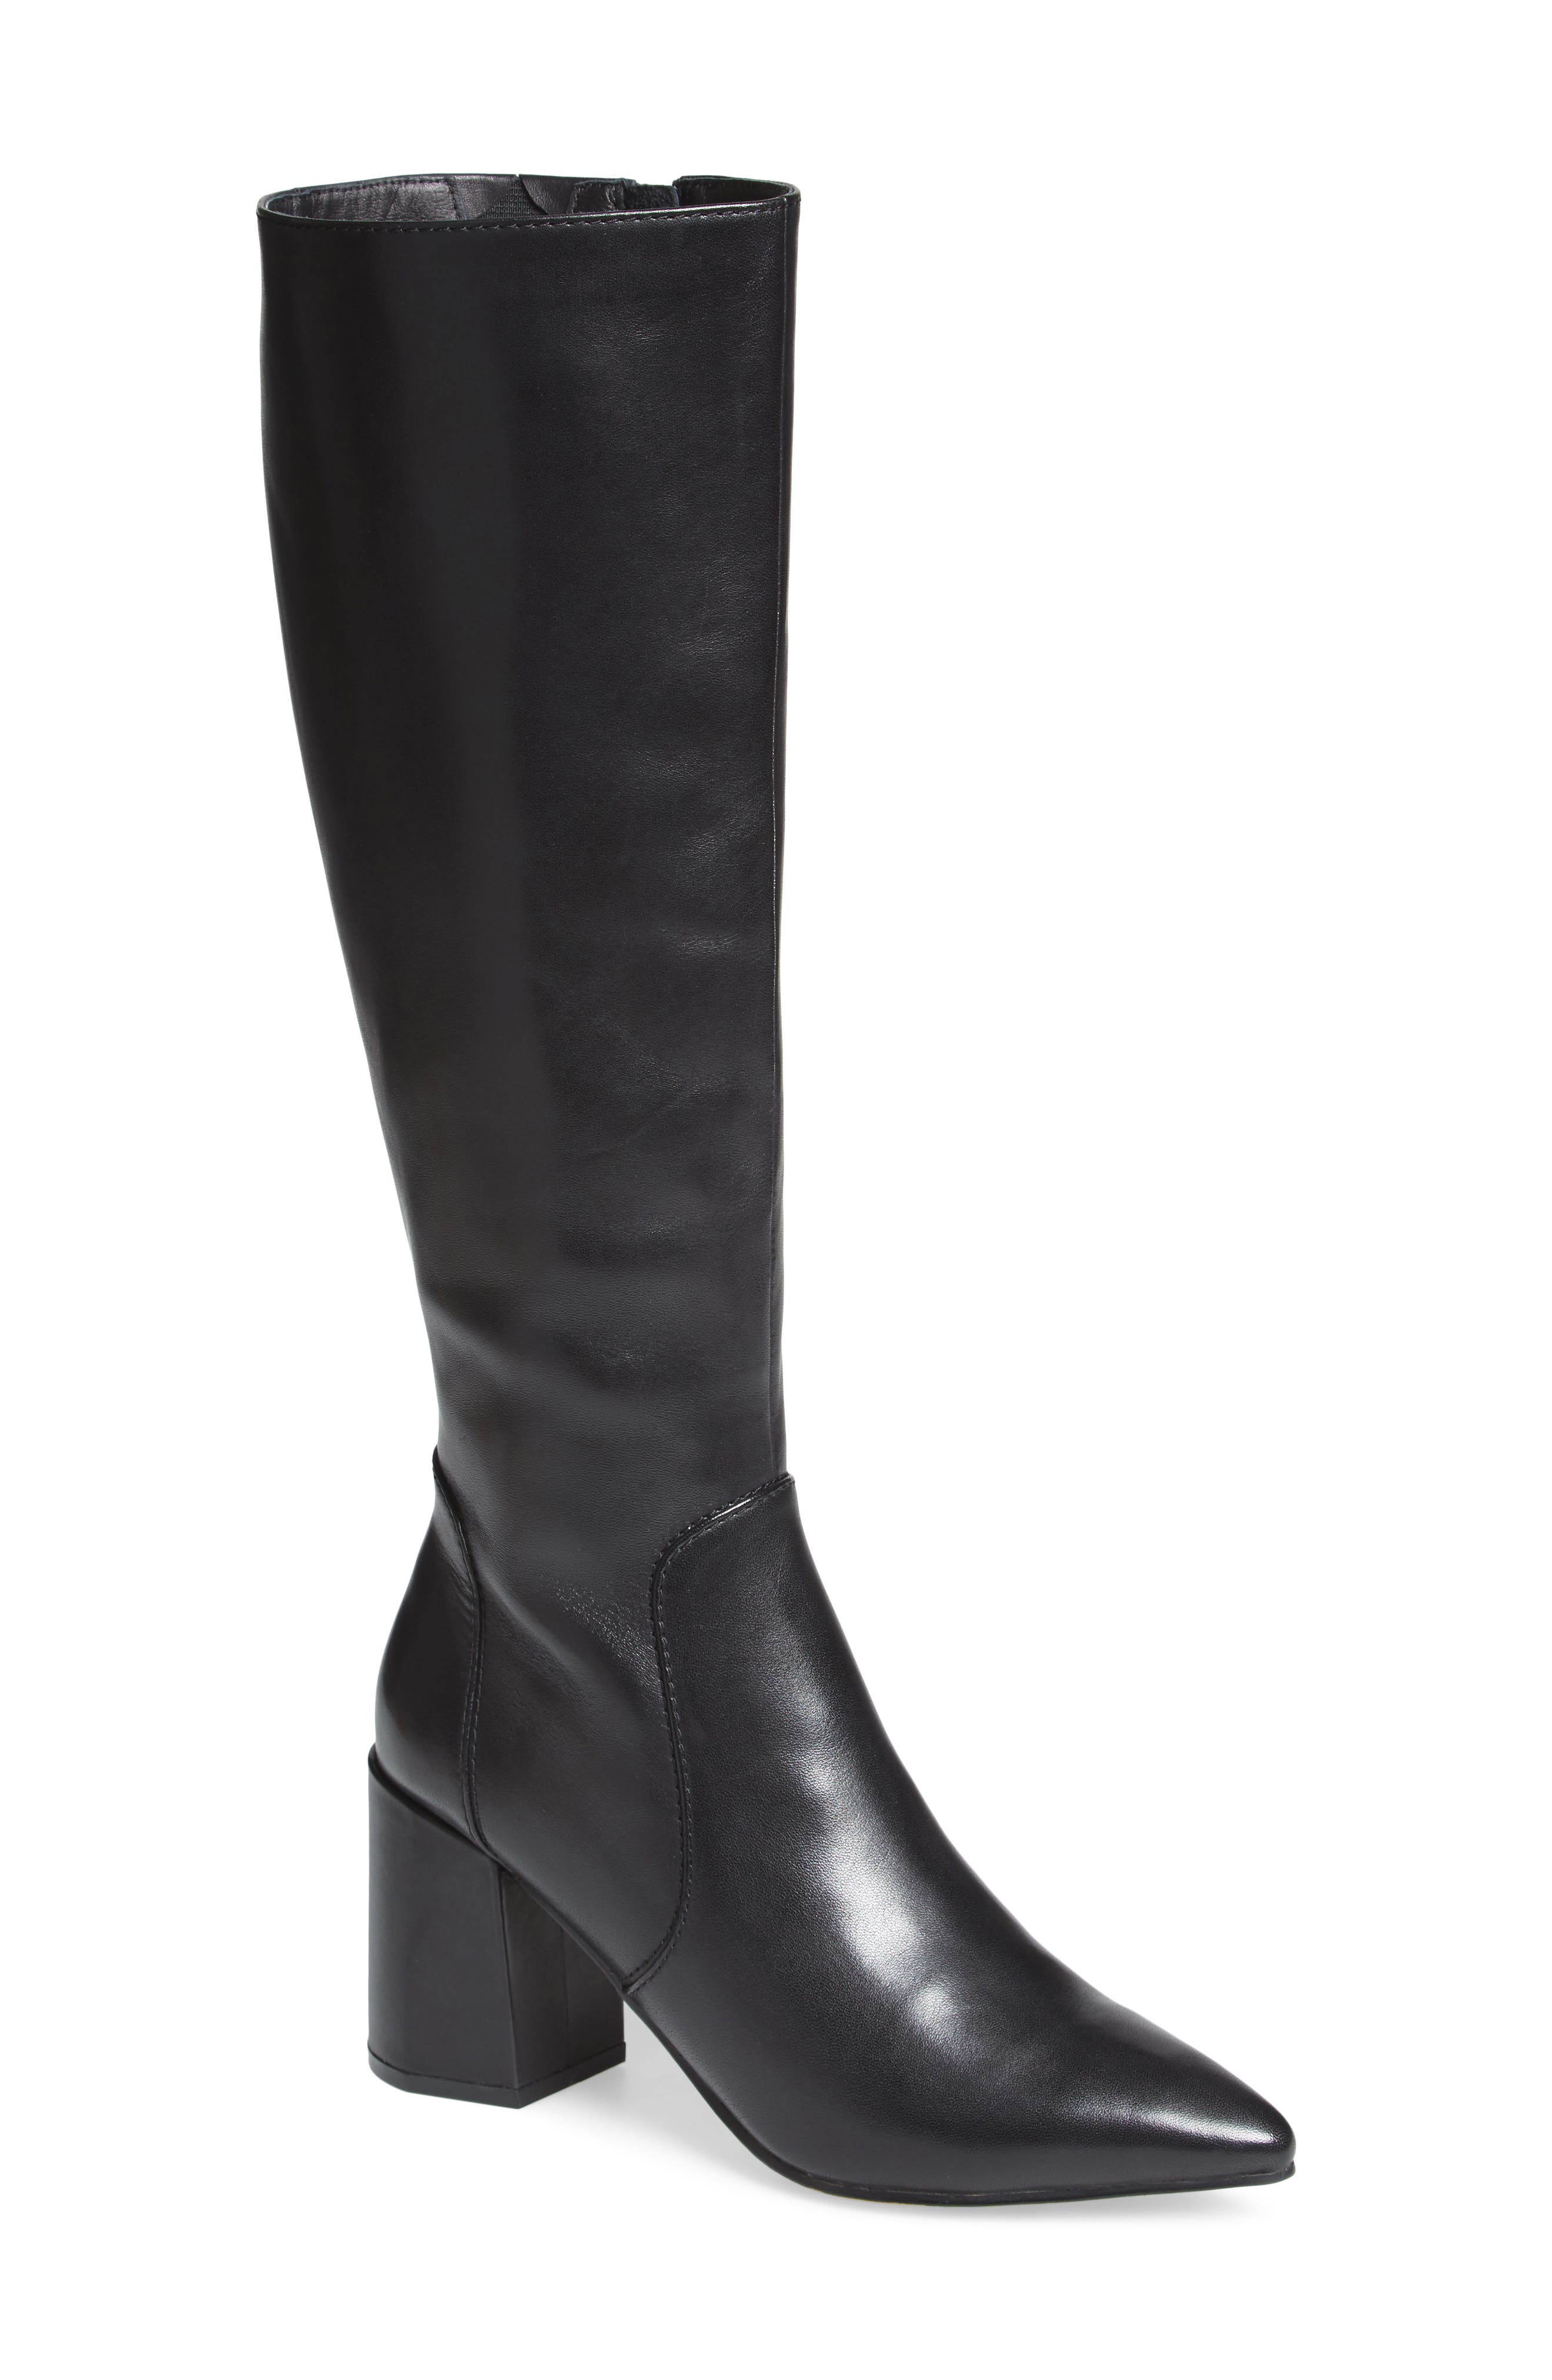 Blink Boot,                             Main thumbnail 1, color,                             Black Leather